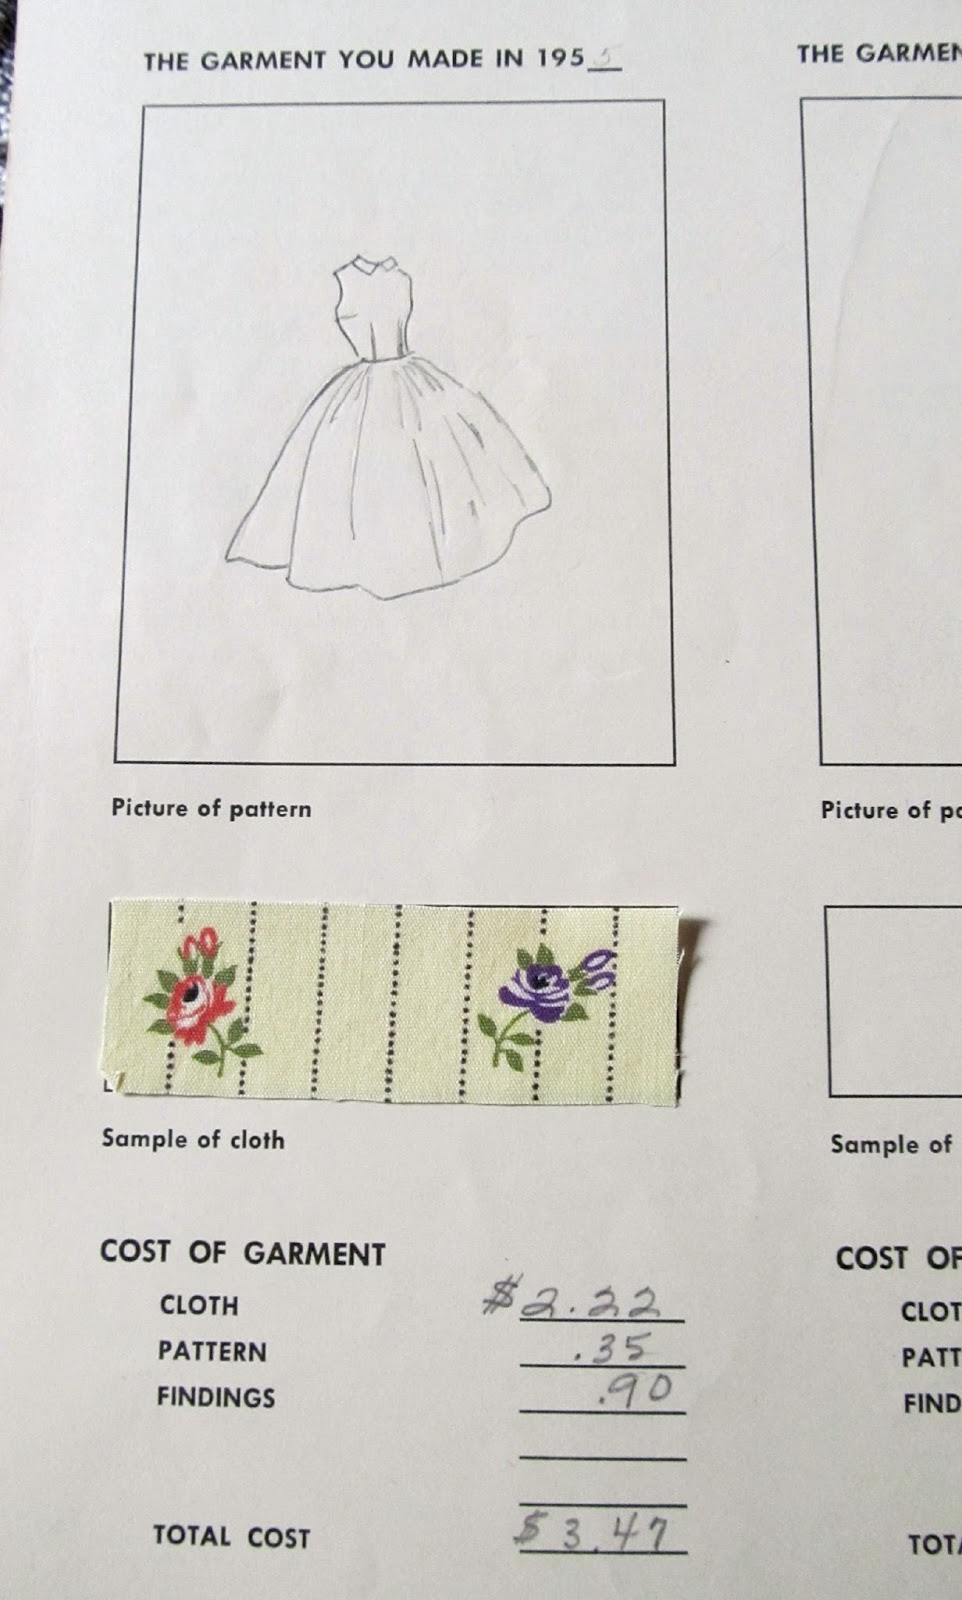 This is a page from my 1955 4-H project book. This is why we sewed back then; it was cheaper than buying ready made clothes as well as they fit better. Even though it only cost me $3.47 to make that dress, my babysitting pay was 50 cents an hour so that took me 7 hours of work to earn the money. There was a page to list how many extra garments we had made that year and I made 15 extra ones. I had only learned to sew one year earlier. I spent most of my babysitting money on fabric.